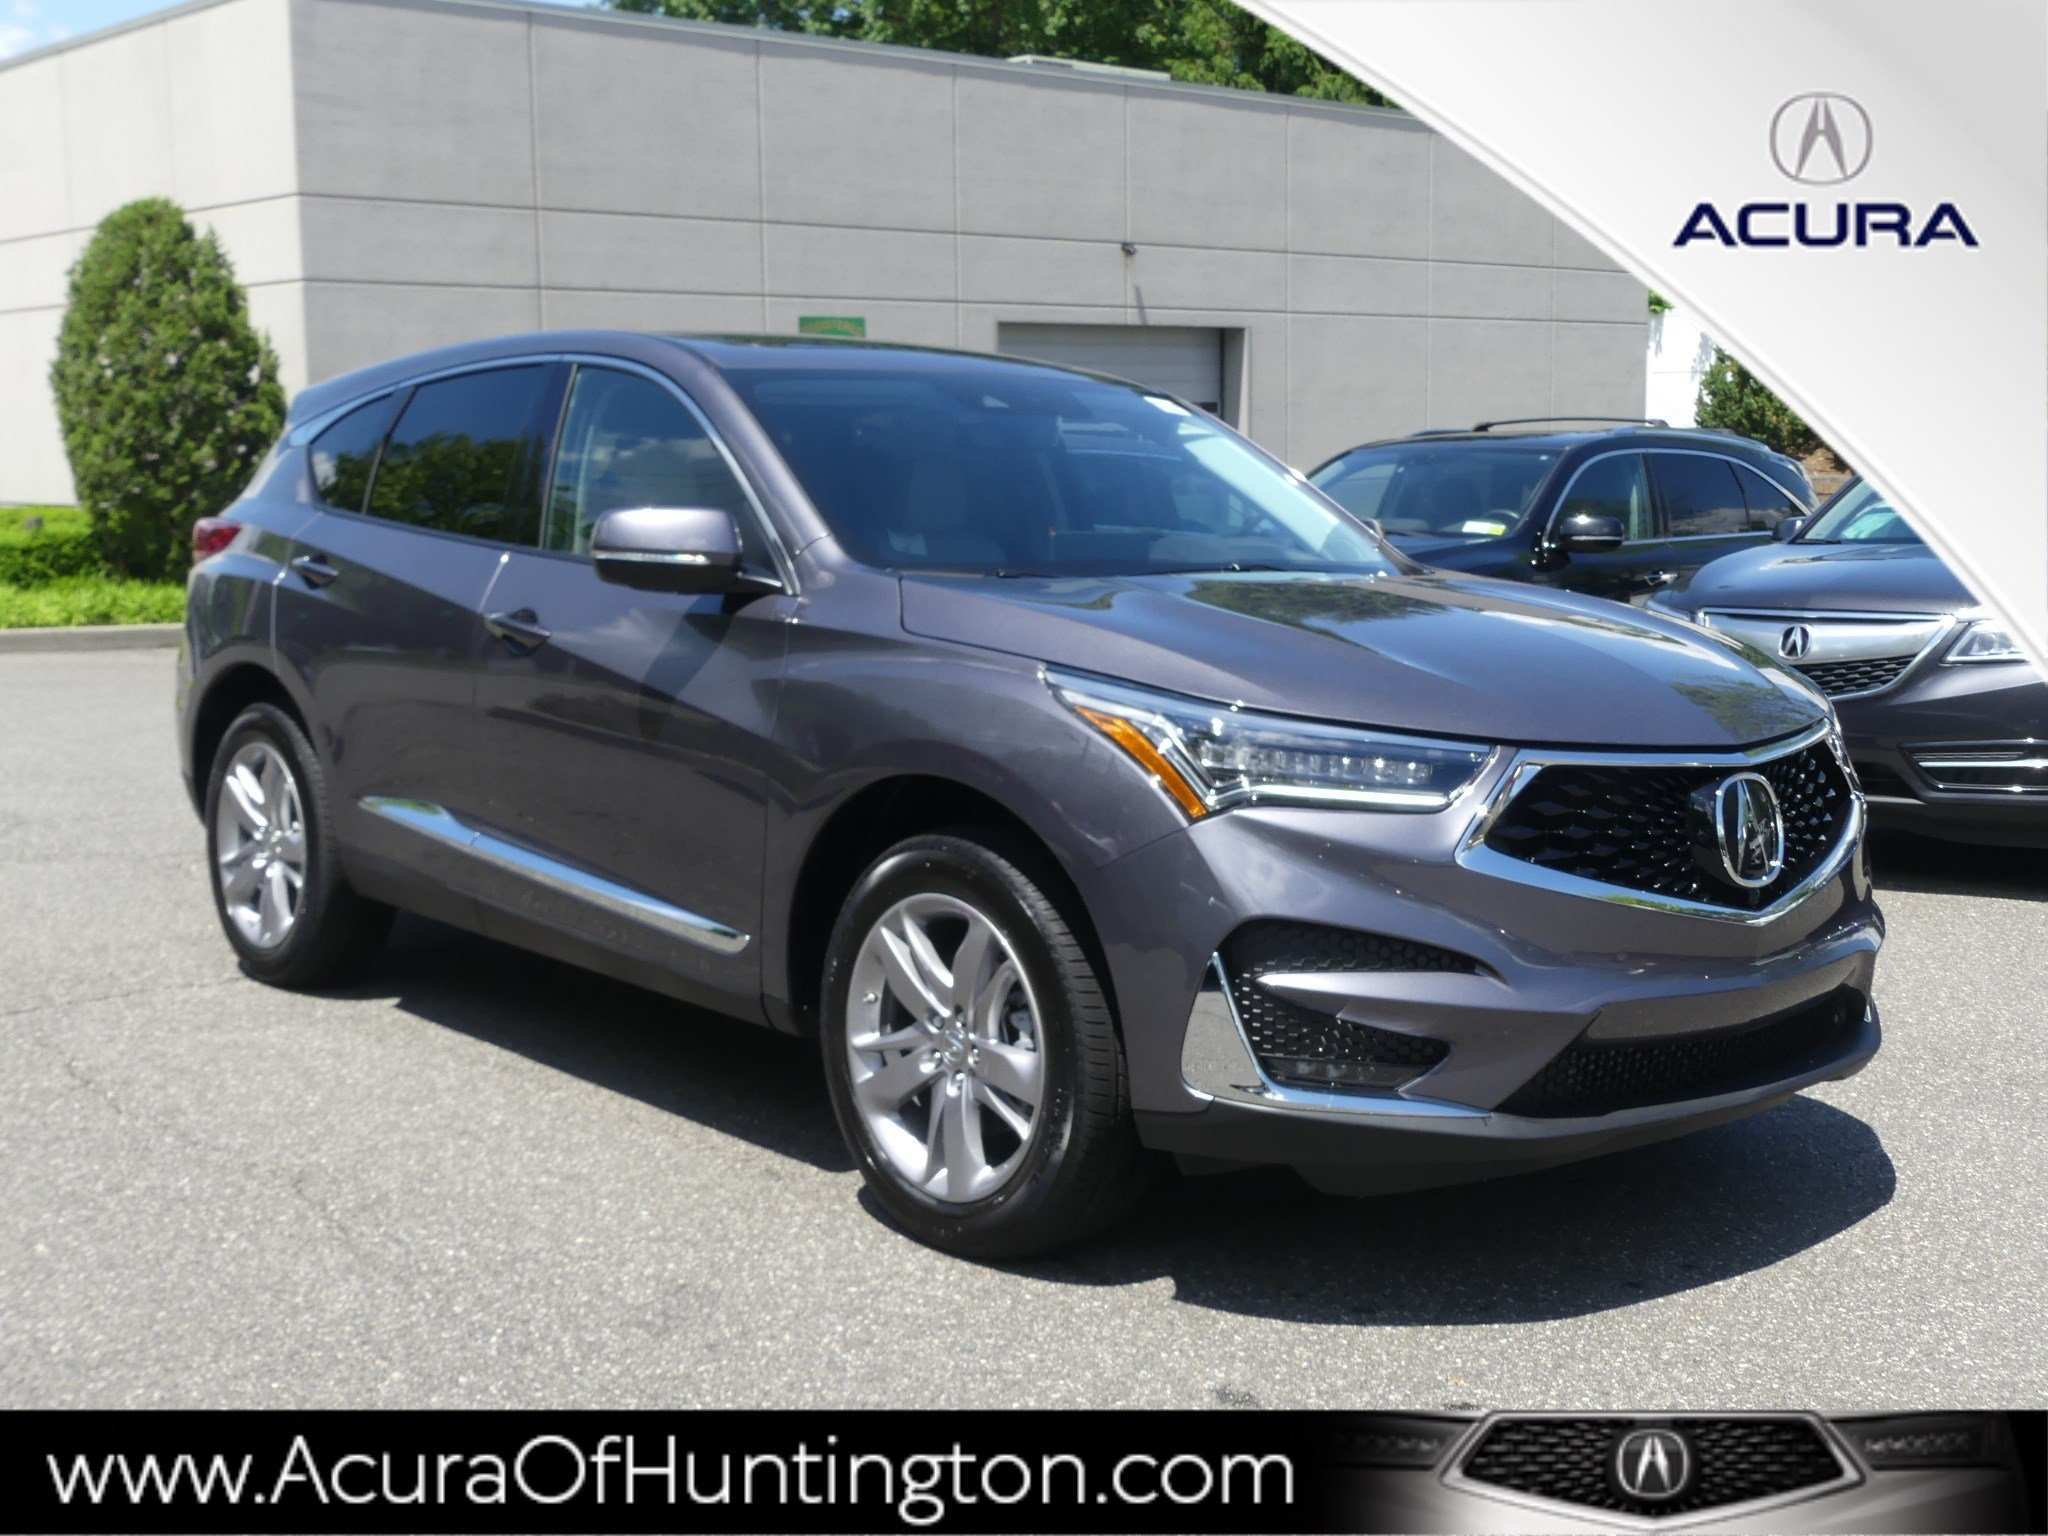 95 New 2020 Acura Rdx Advance Package Reviews for 2020 Acura Rdx Advance Package